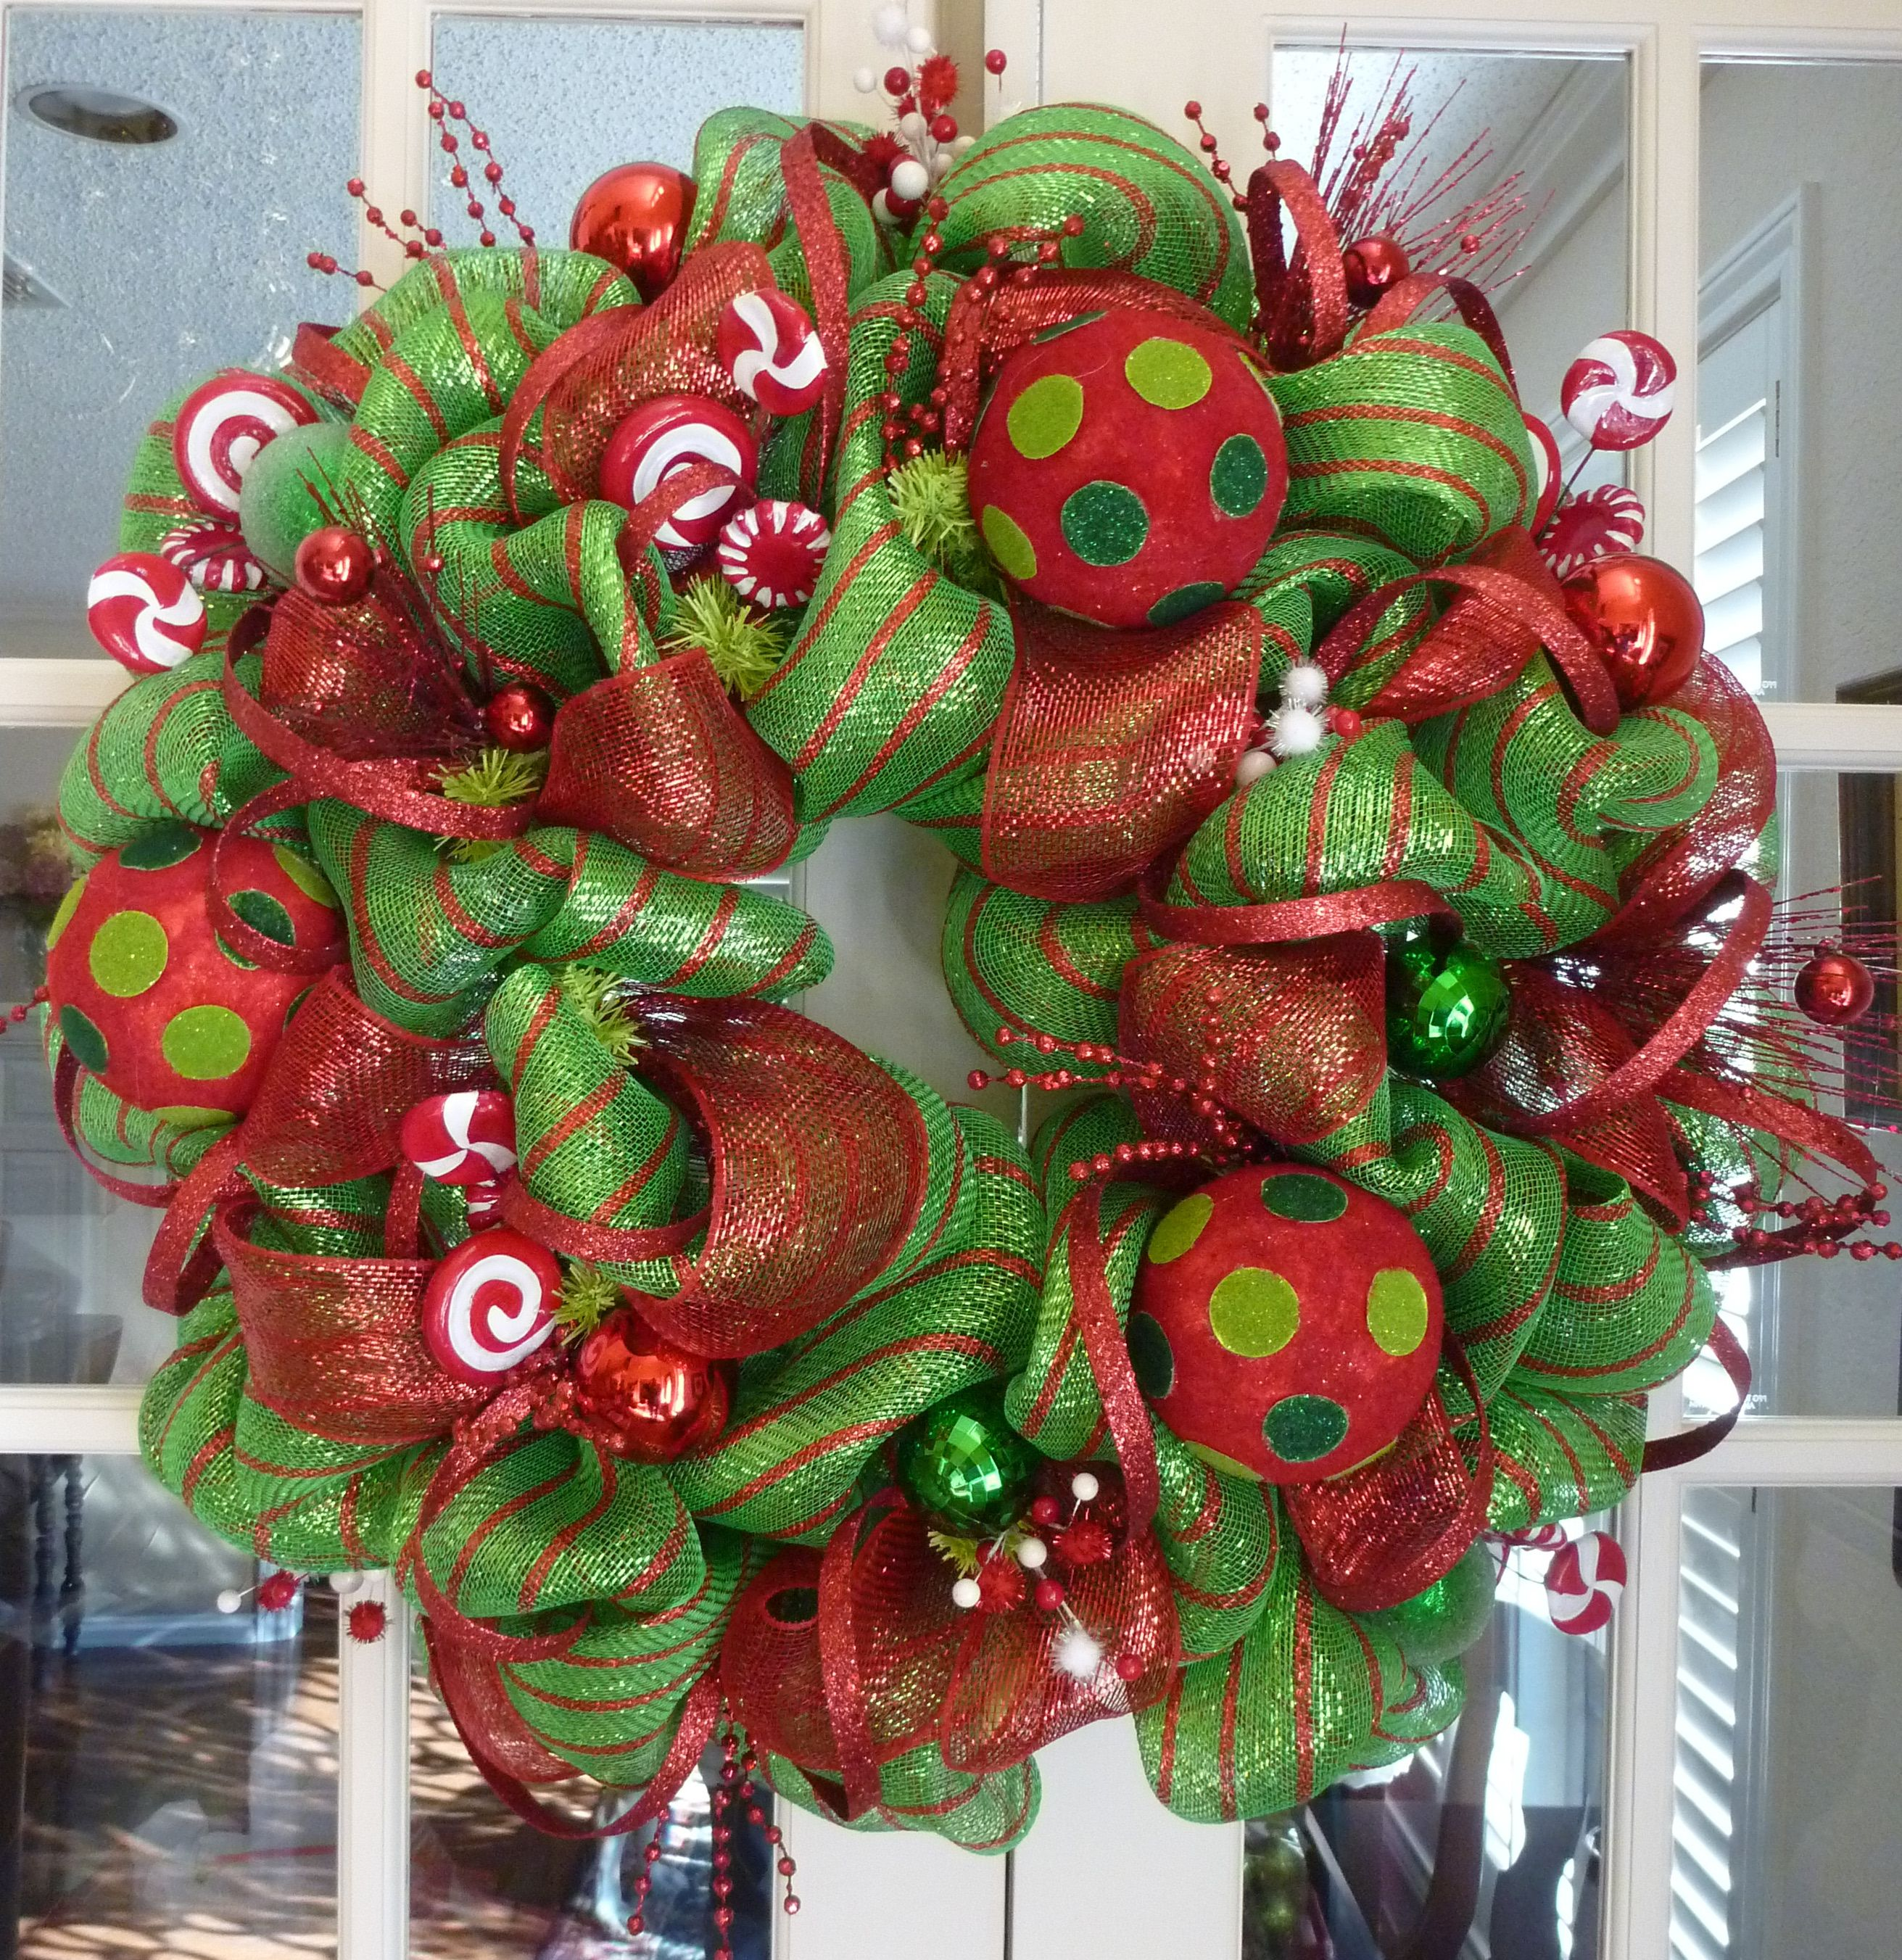 Deco Mesh Christmas Tree Wreath: Red And Green Deco Mesh Wreath By Decoglitz On Etsy